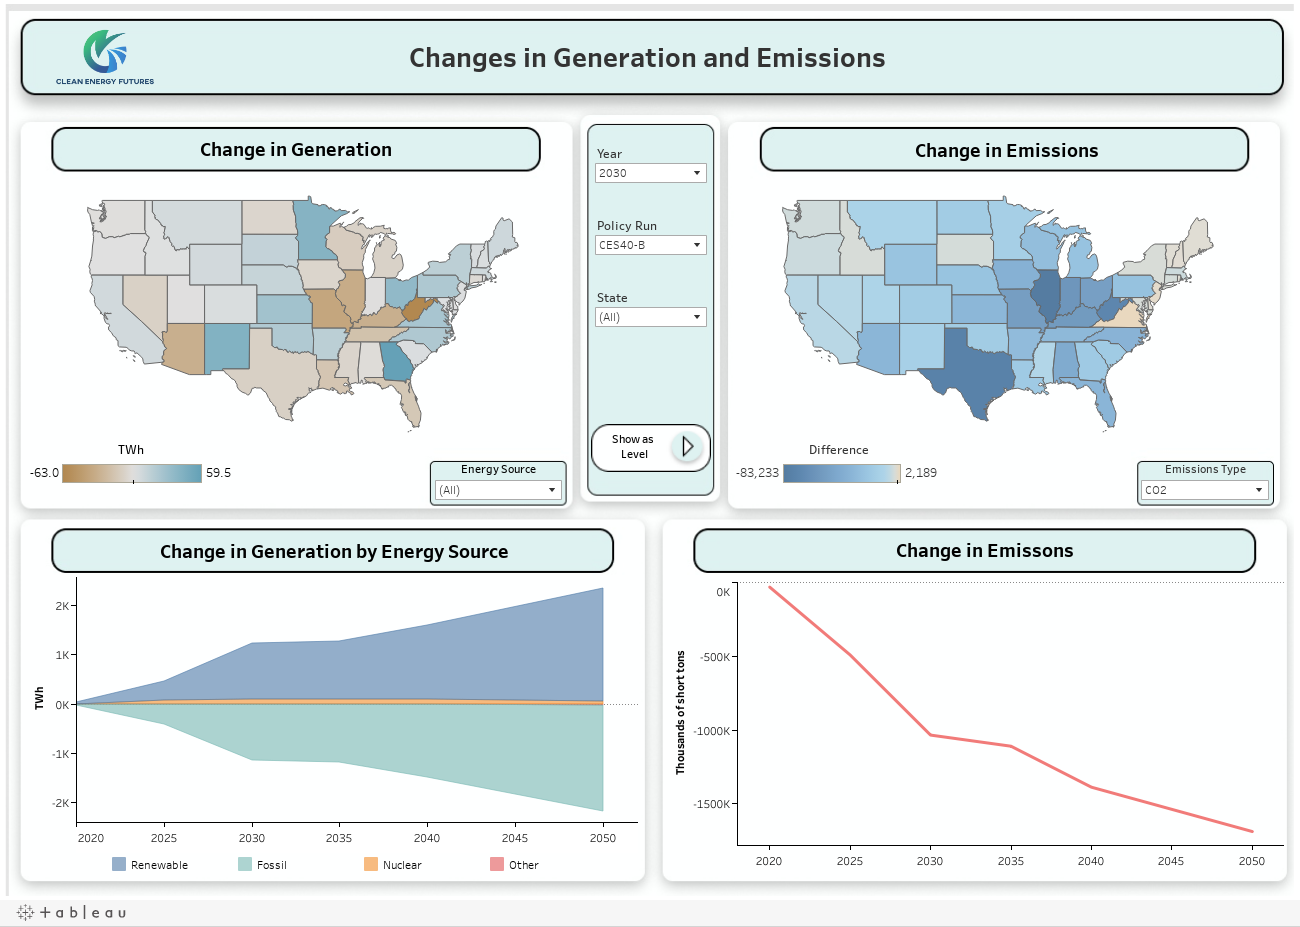 Changes in Generation and Emissions